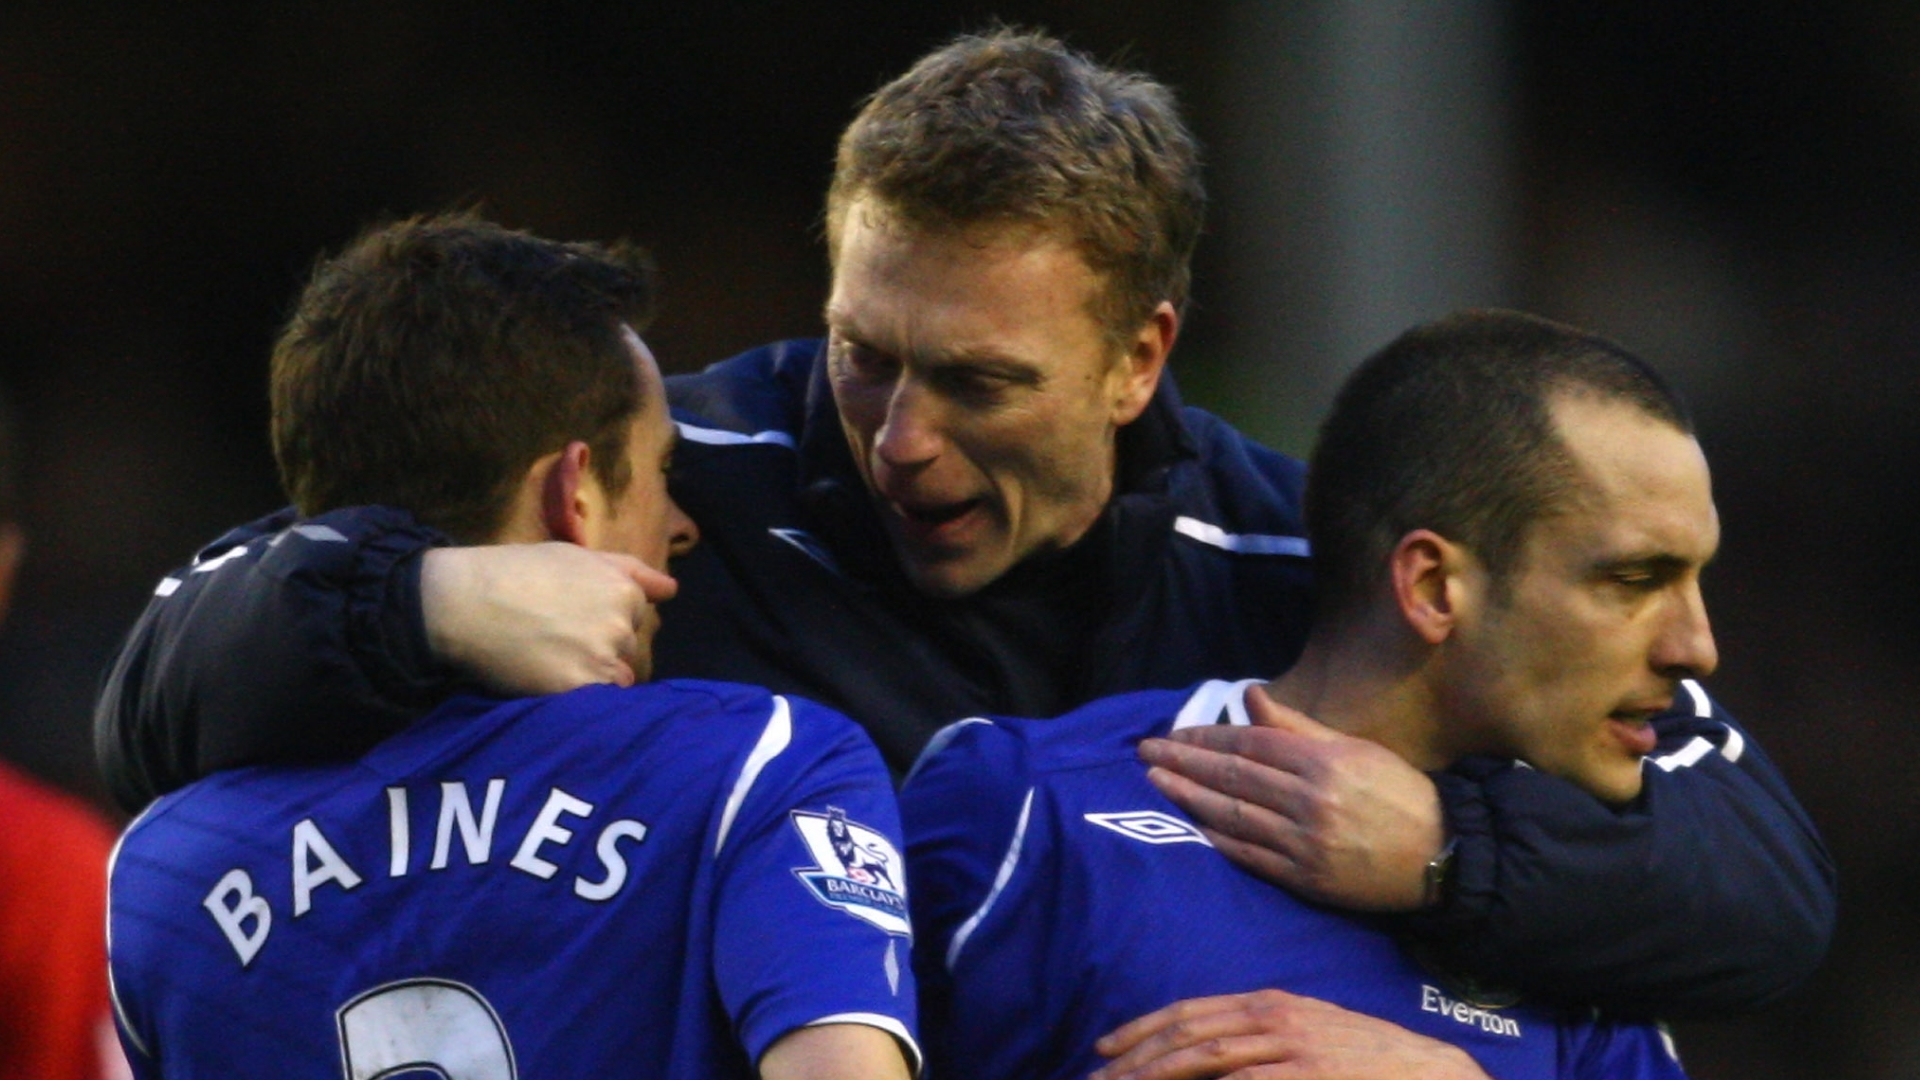 https://images.performgroup.com/di/library/GOAL/7a/85/leighton-baines-david-moyes-leon-osman-everton_16loasgk02p9o1vjxdm0843gx1.jpg?t=1233287927